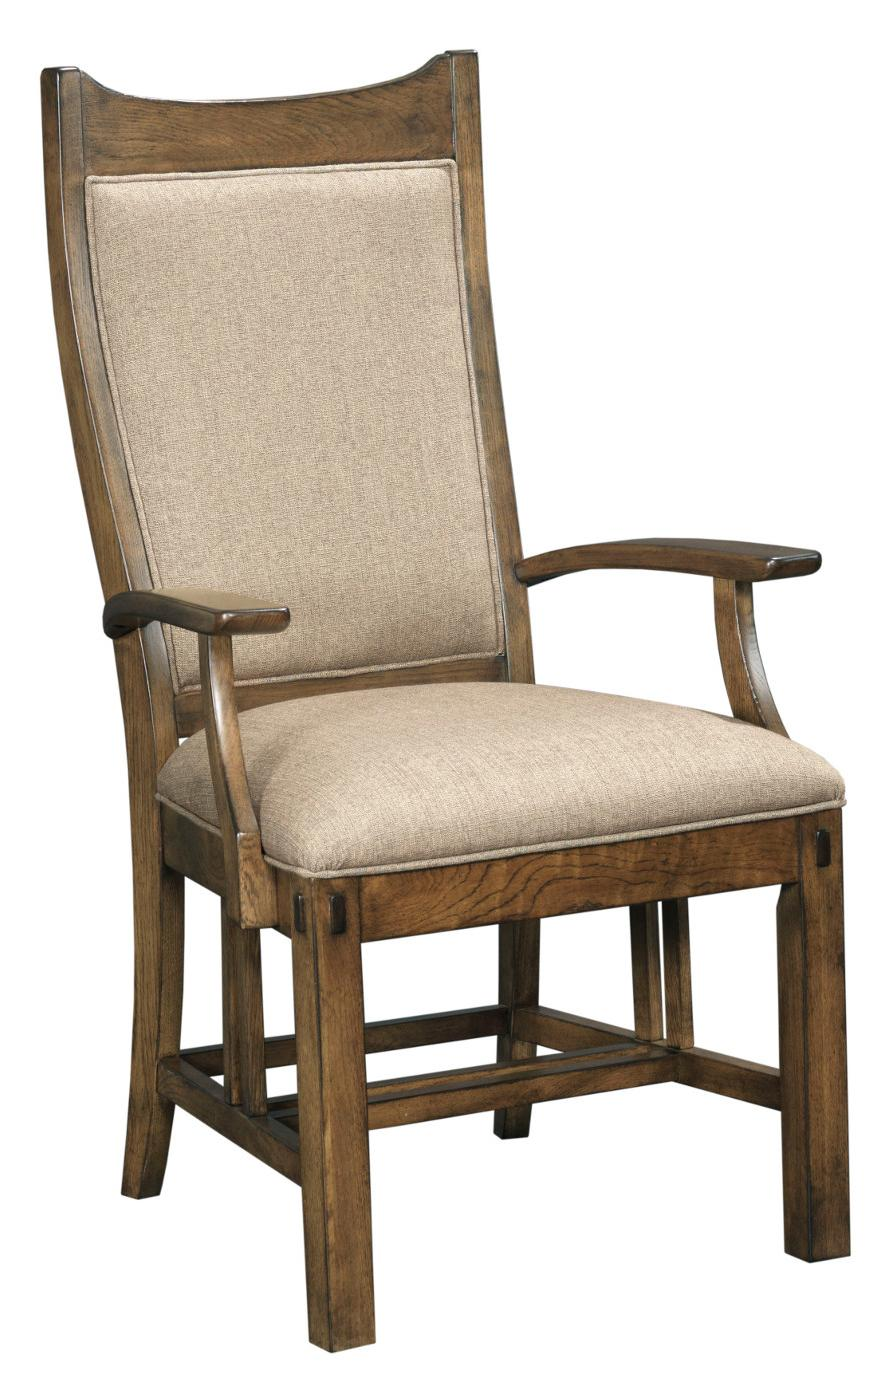 Kincaid Furniture Bedford Park Craftsman Arm Chair - Item Number: 74-064